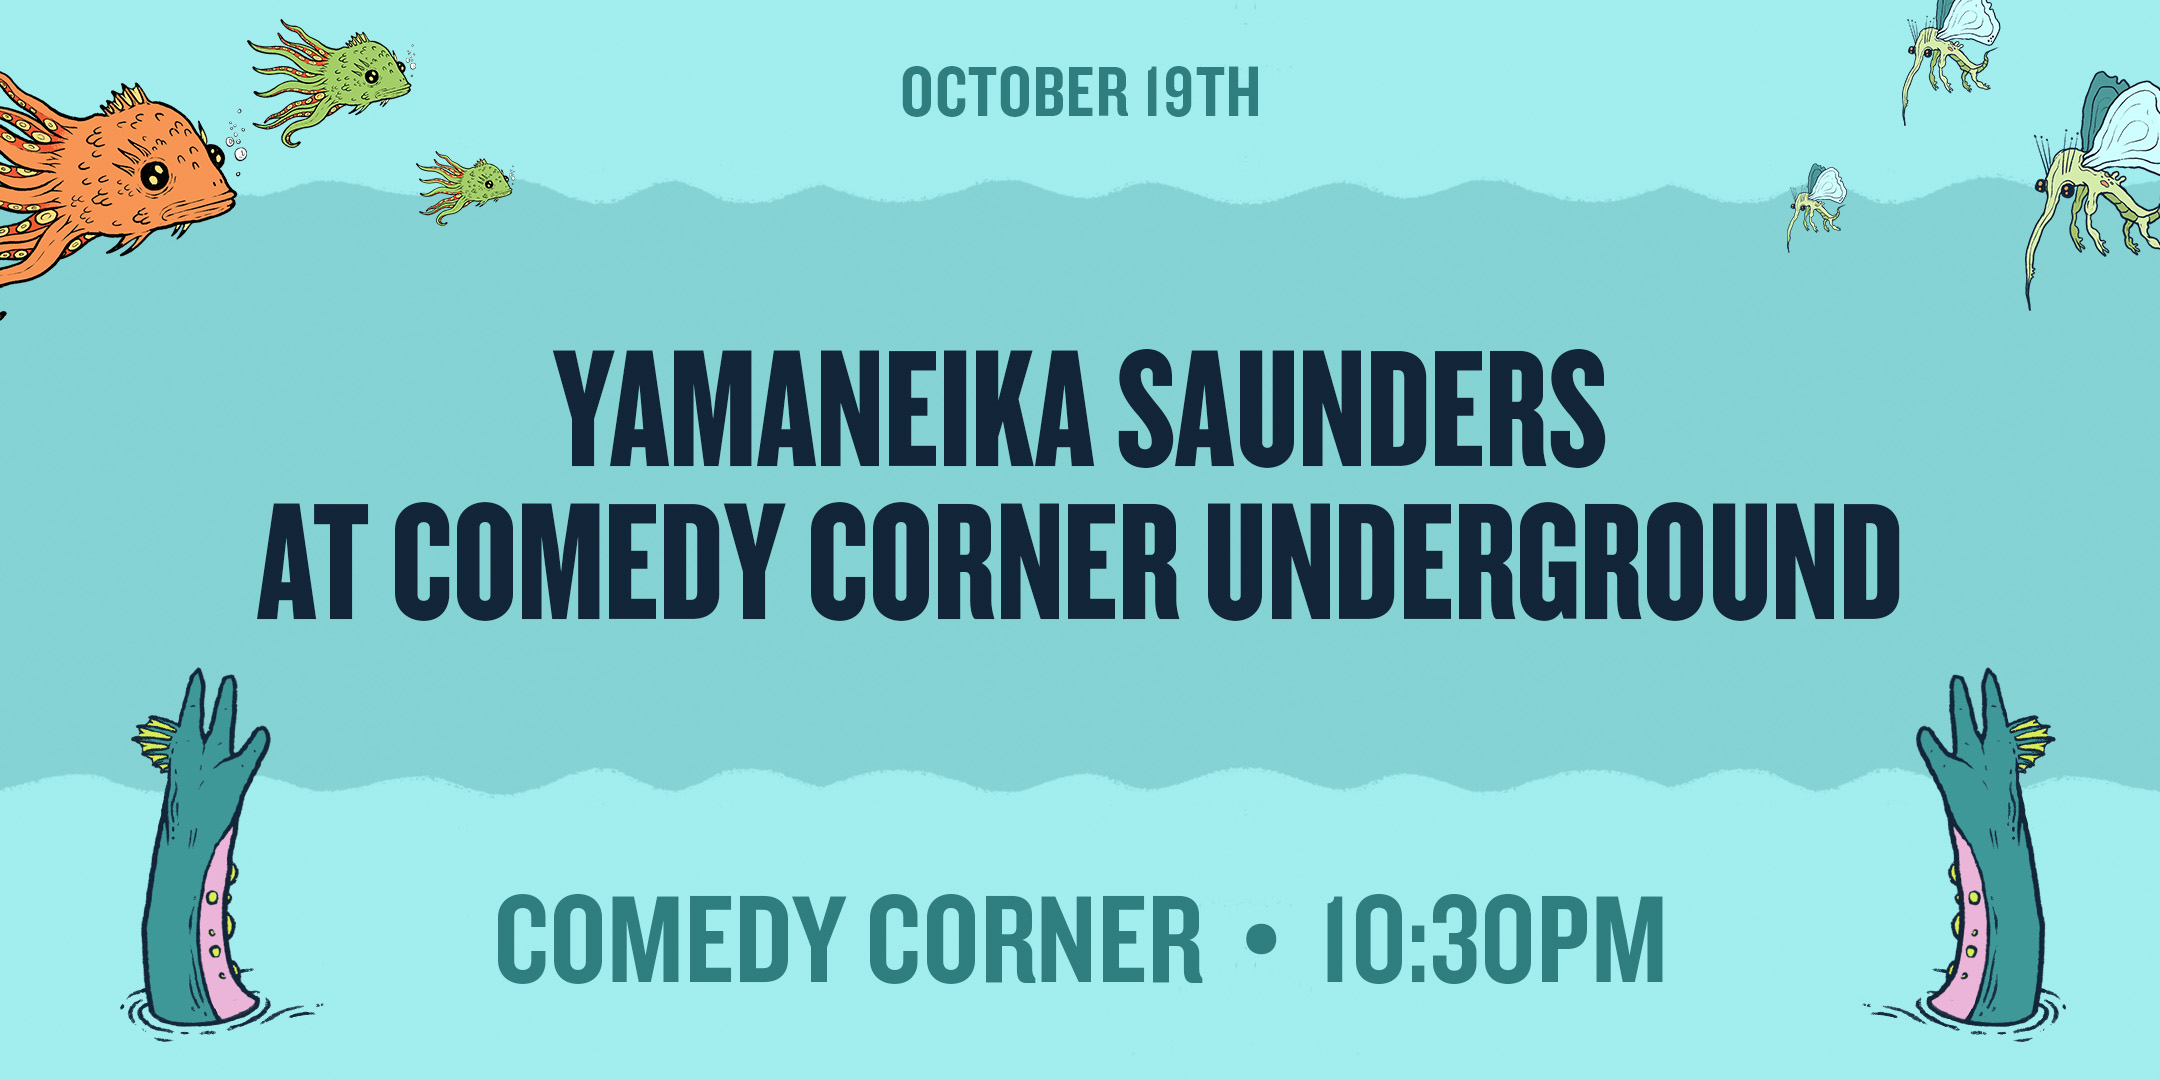 oct19-yamaneika_saunders_at_ccu.jpg